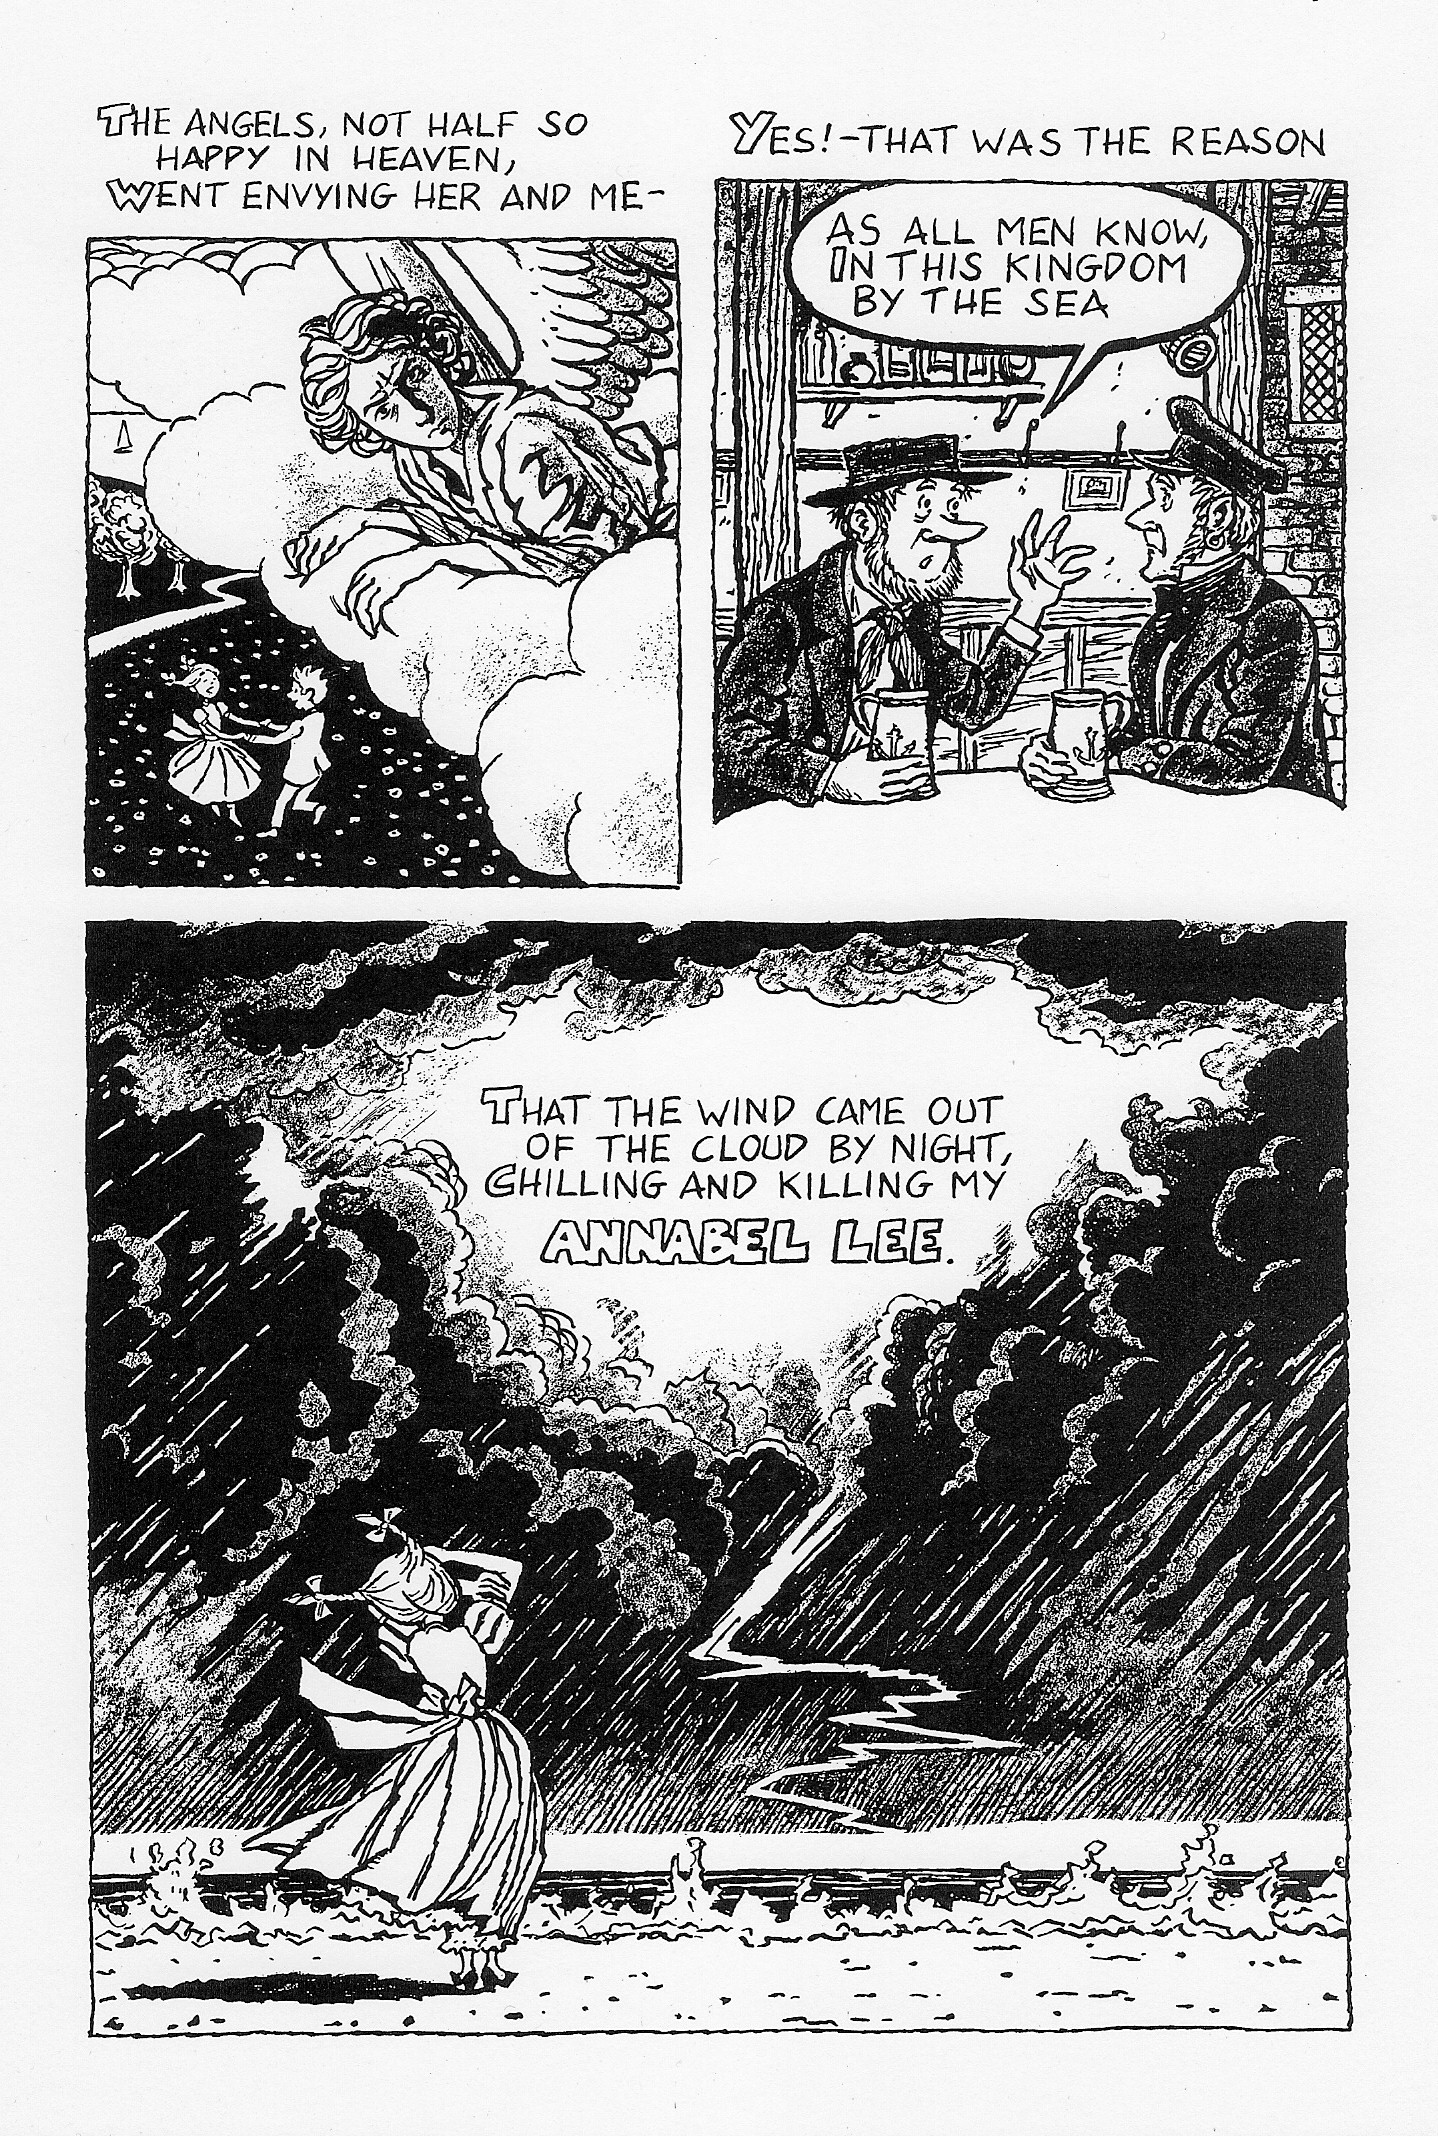 annabel lee by edgar allan poe julian peters comics annabel lee1 annabellee2 annabellee3 annabellee4 annabellee5 annabellee6